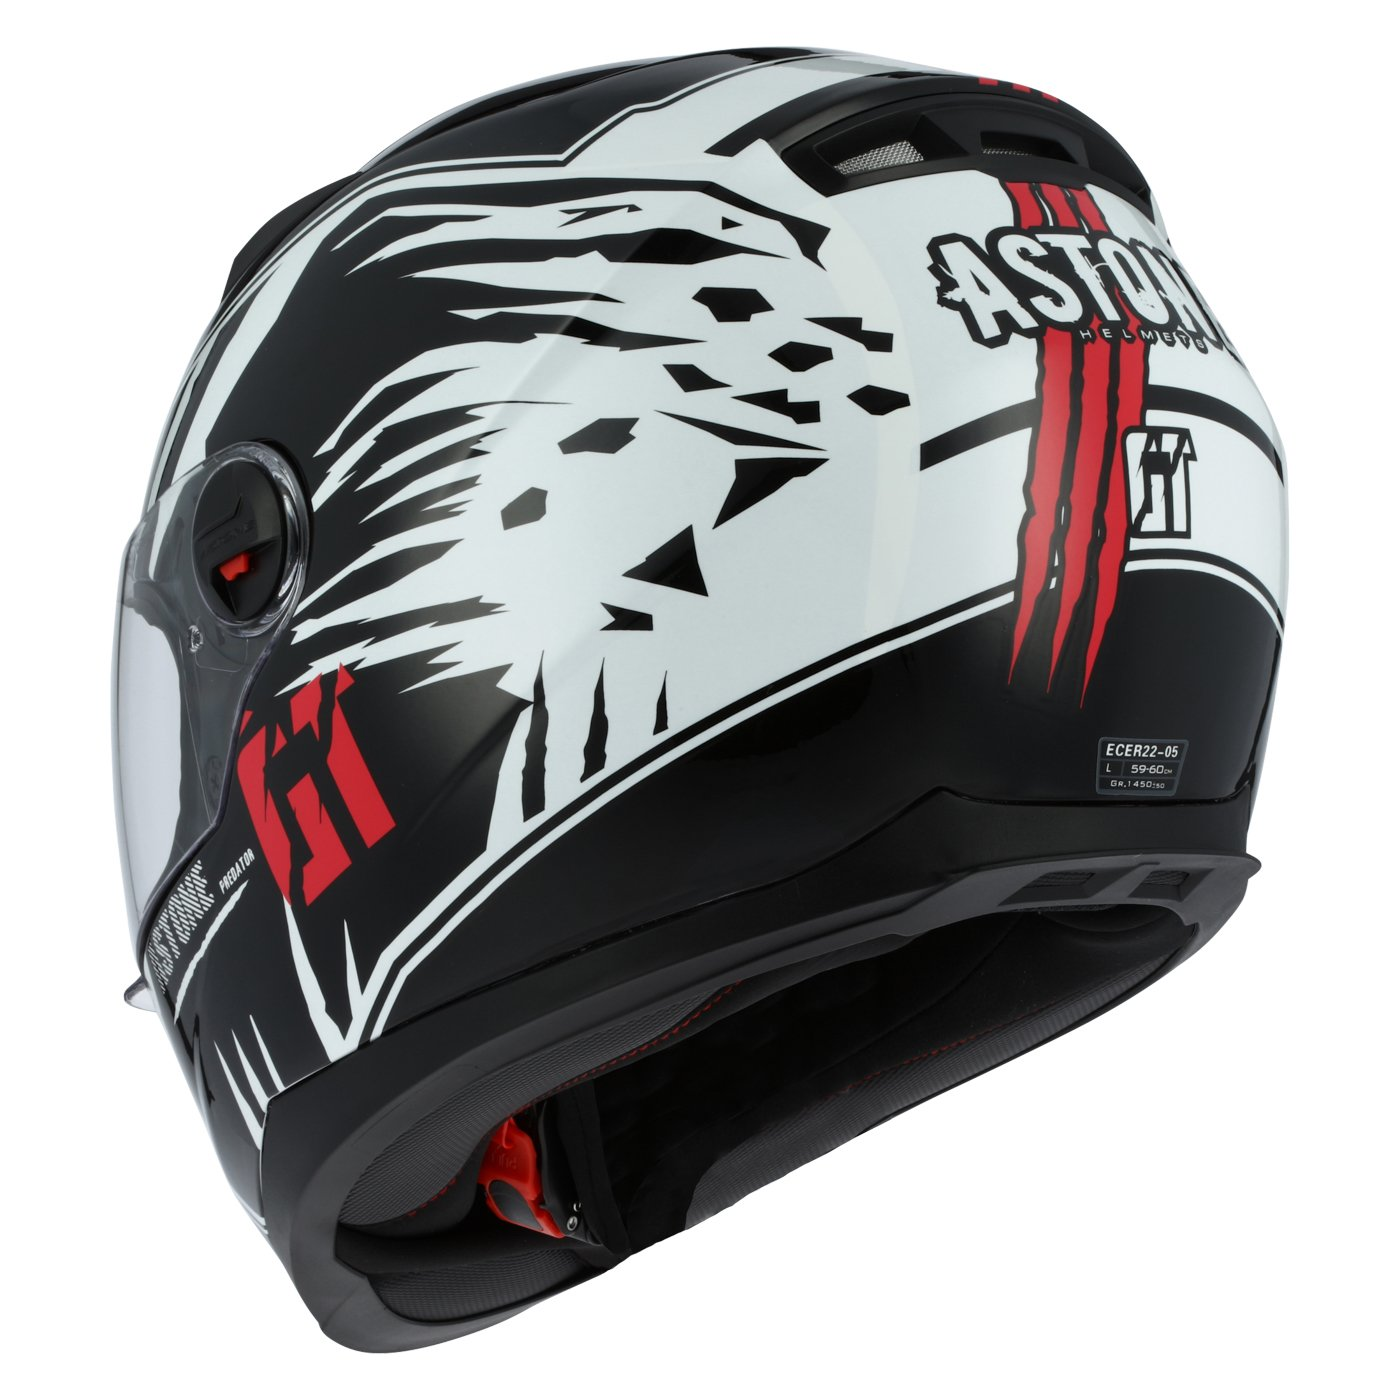 Amazon.es: Astone Helmets gt2g-predator-bwxl casco Moto Integral GT, color negro/blanco, talla XL